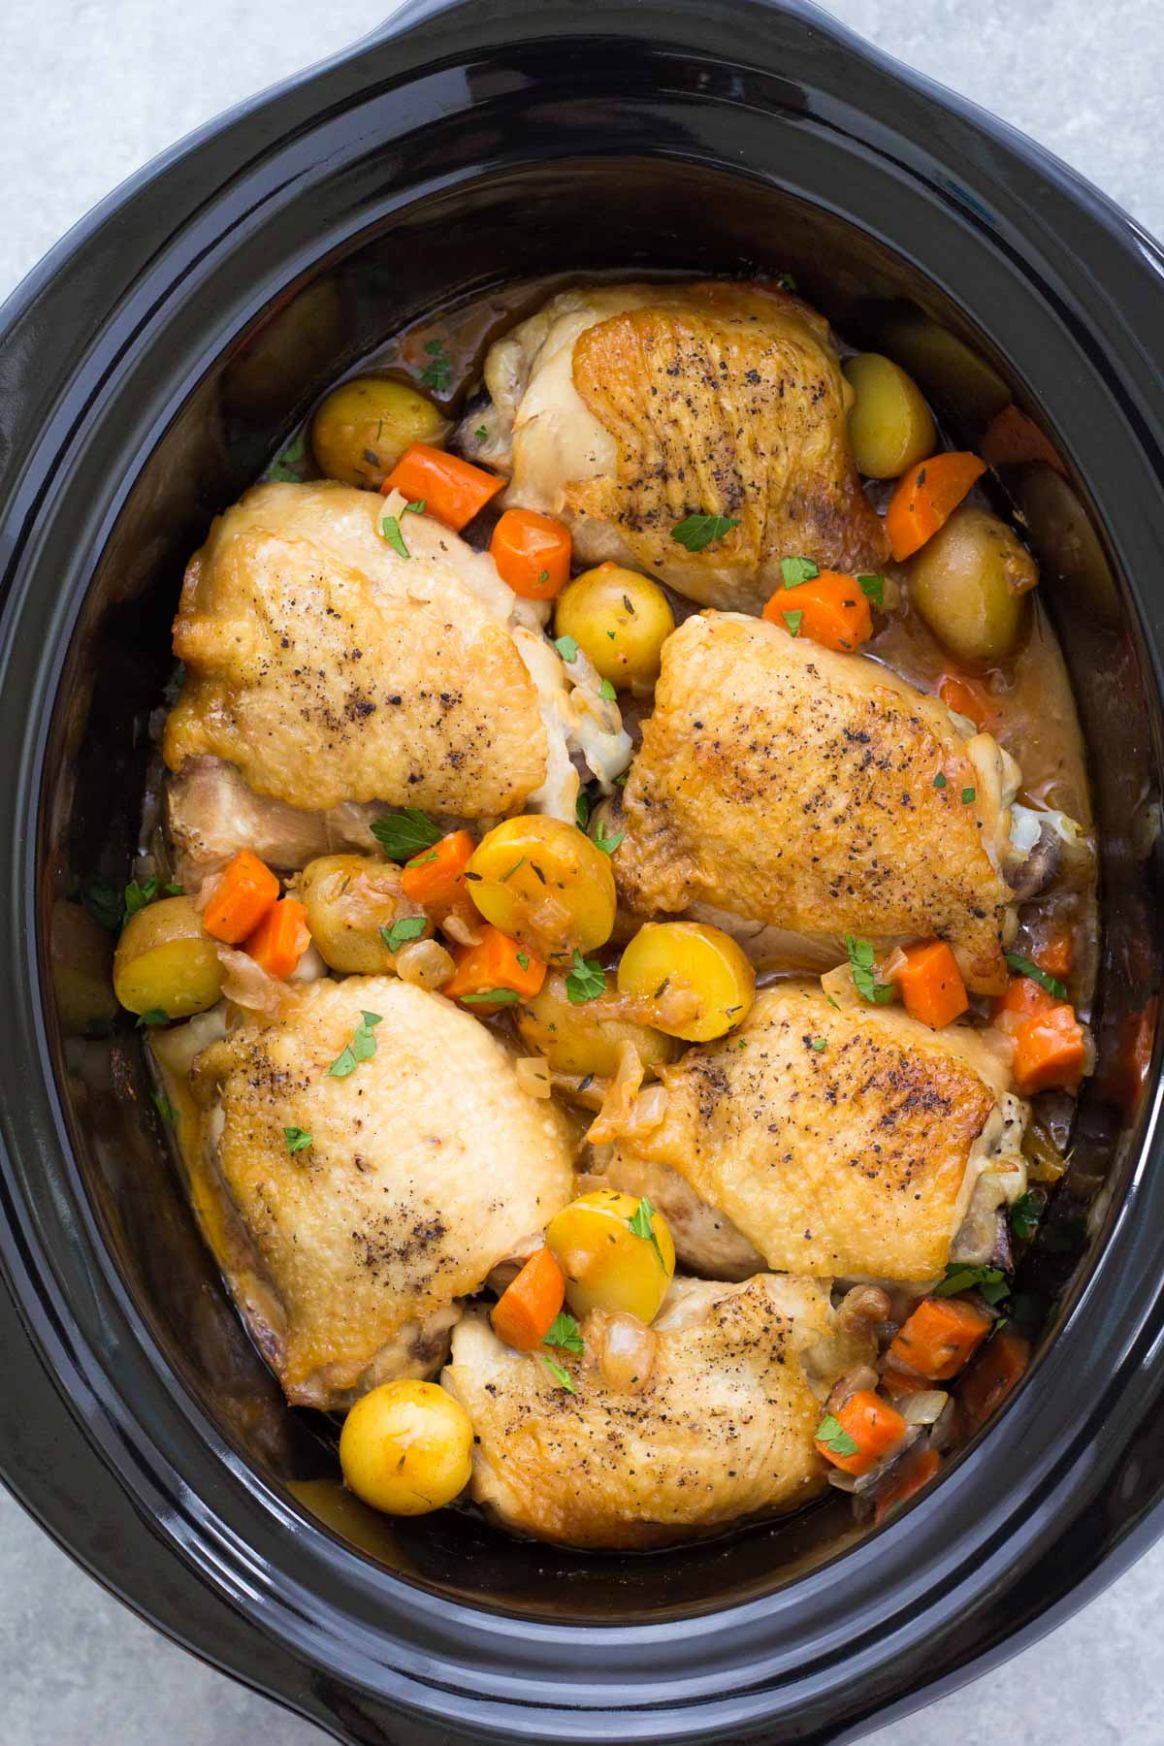 Crockpot Chicken and Potatoes - Recipes Chicken Breast Crock Pot